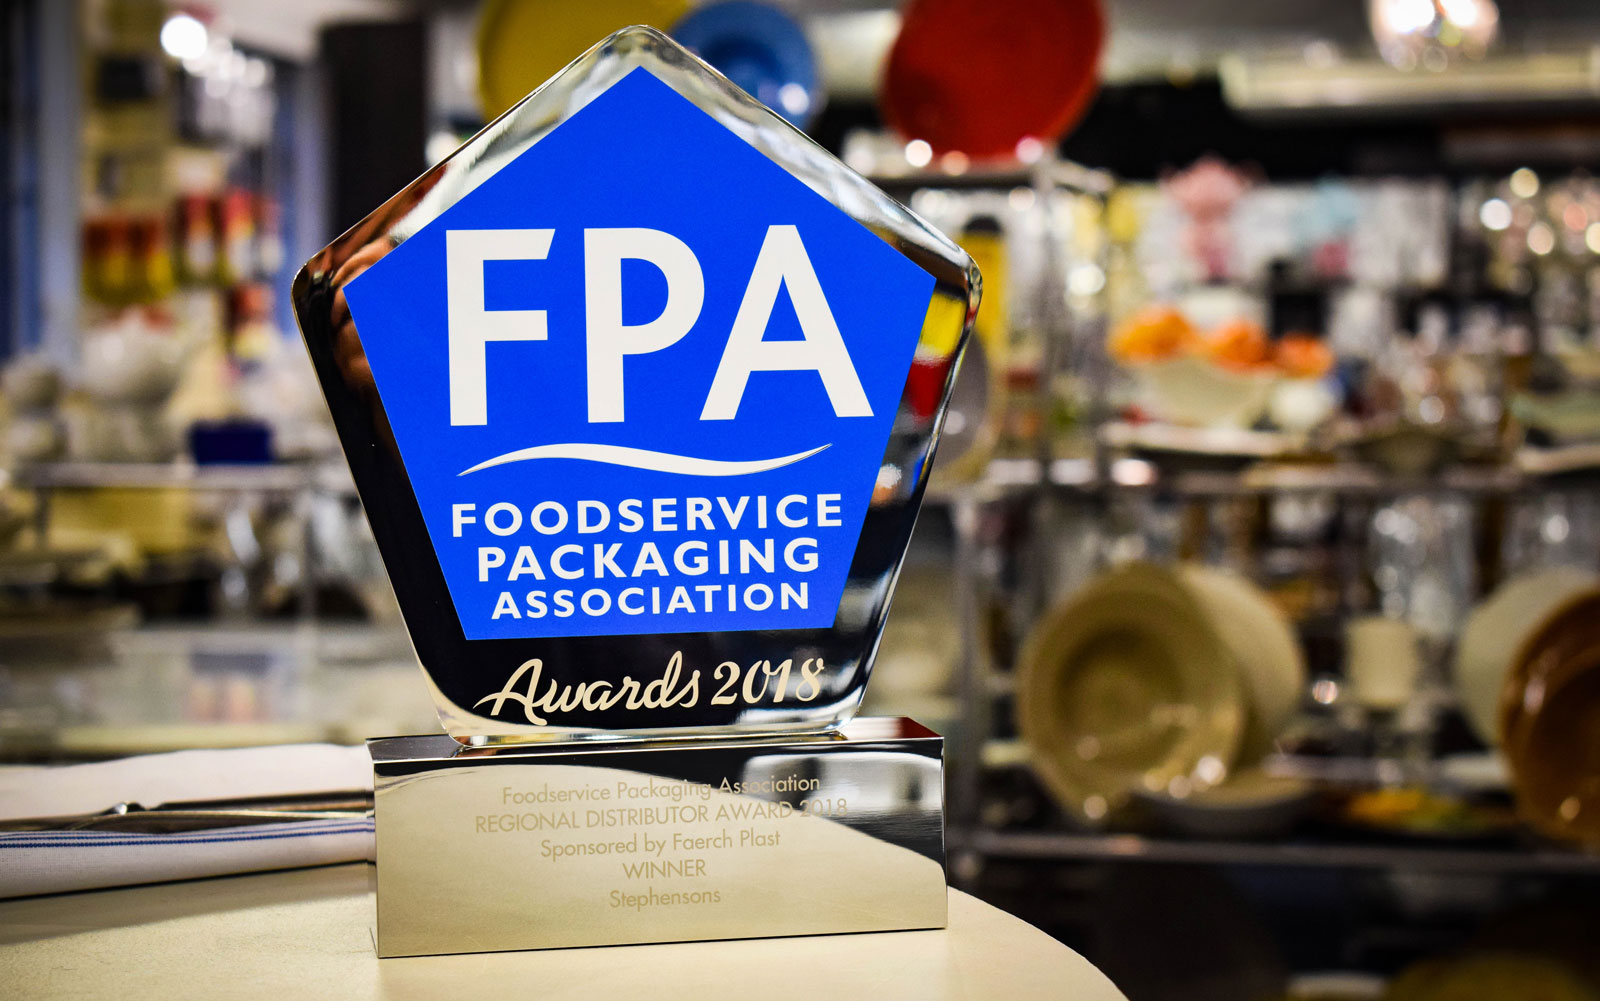 Stephensons were proud to be named Regional Distributor of the Year at the 2018 FPA Awards